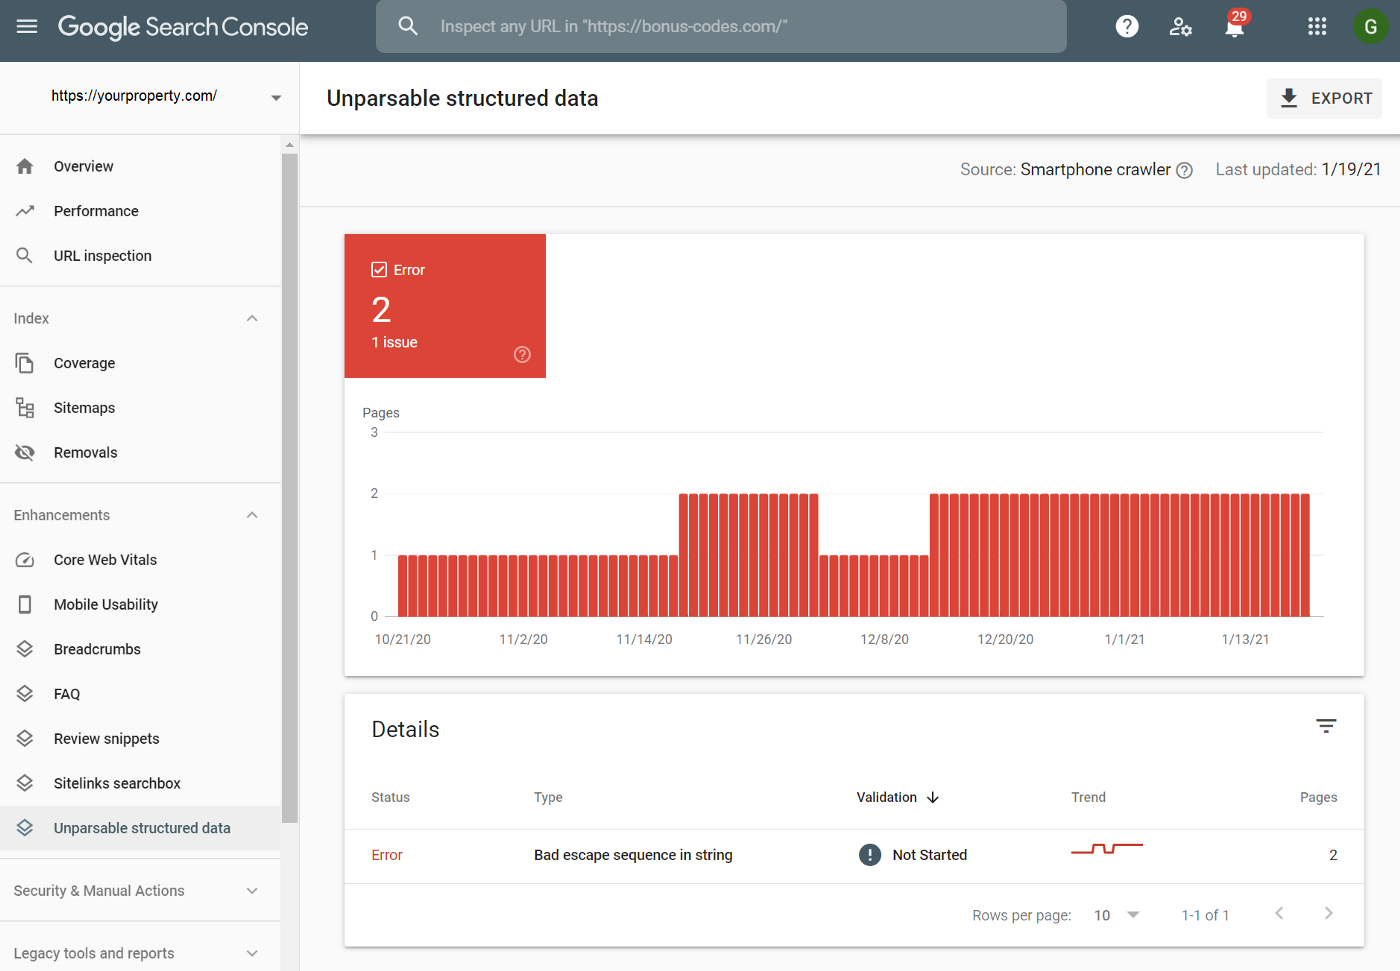 Screenshot of the Unparsable Structured Data report in Google Search Console